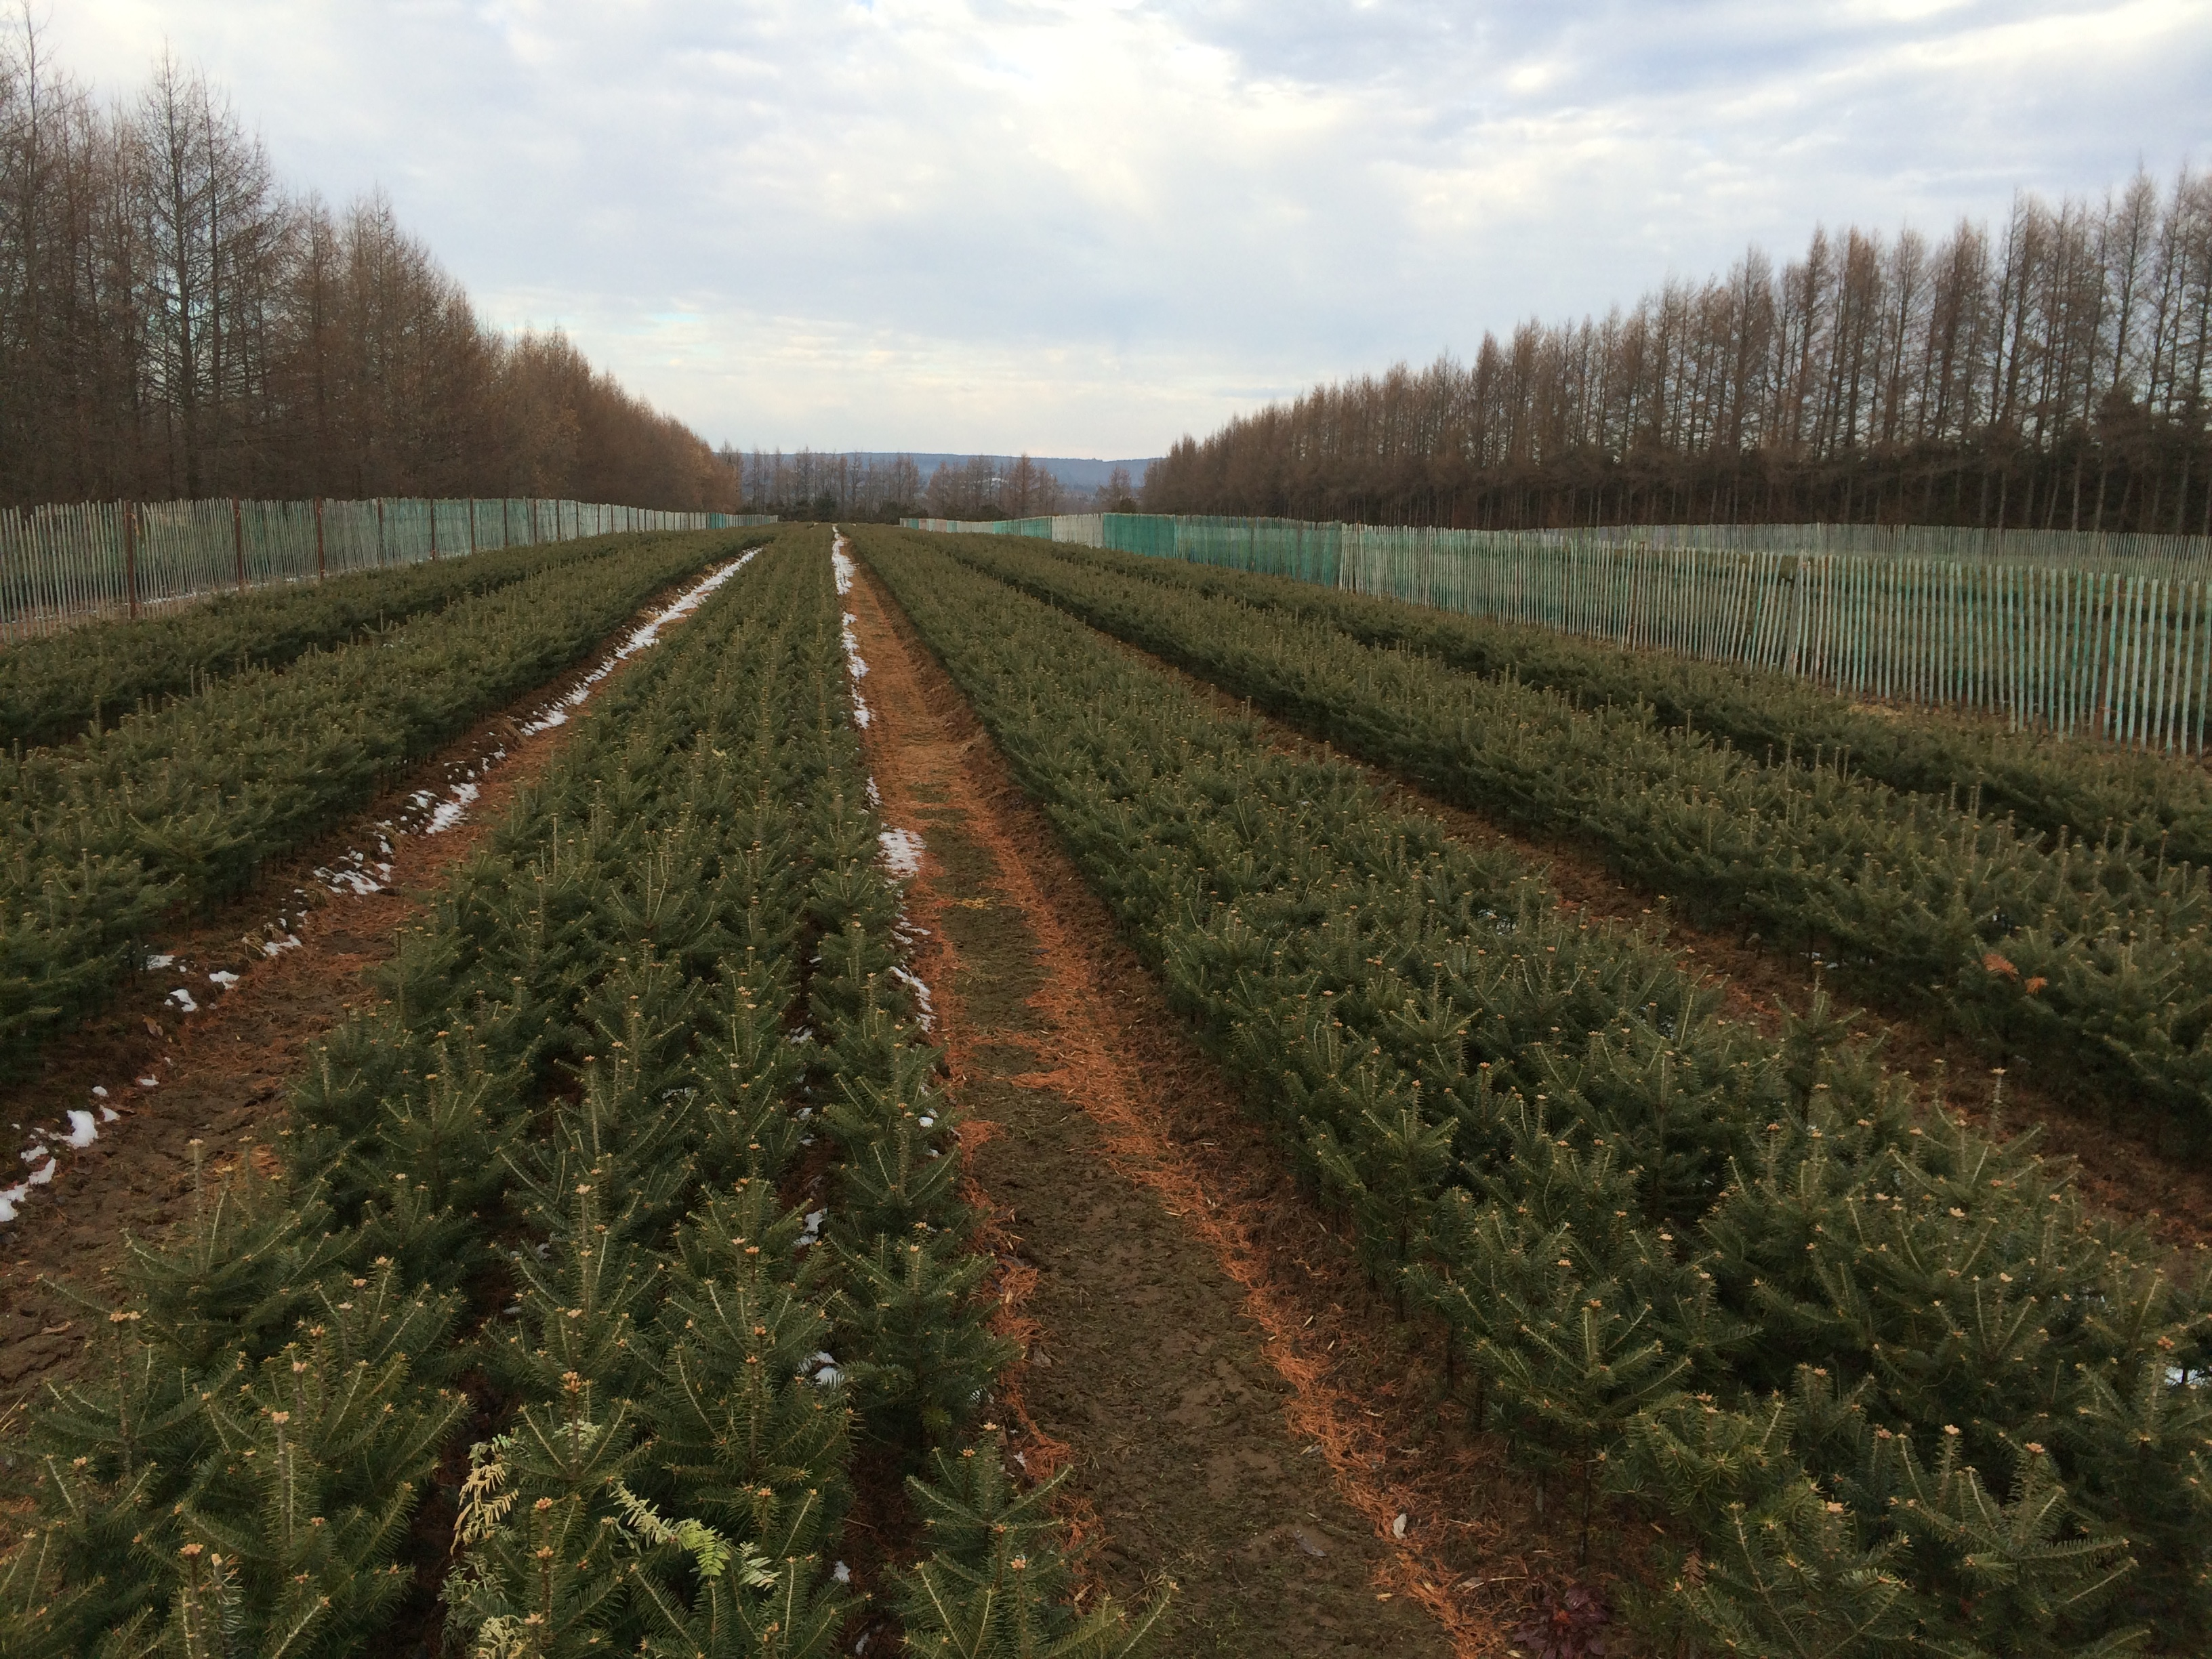 Field of fir trees 2-2 ready for harvest